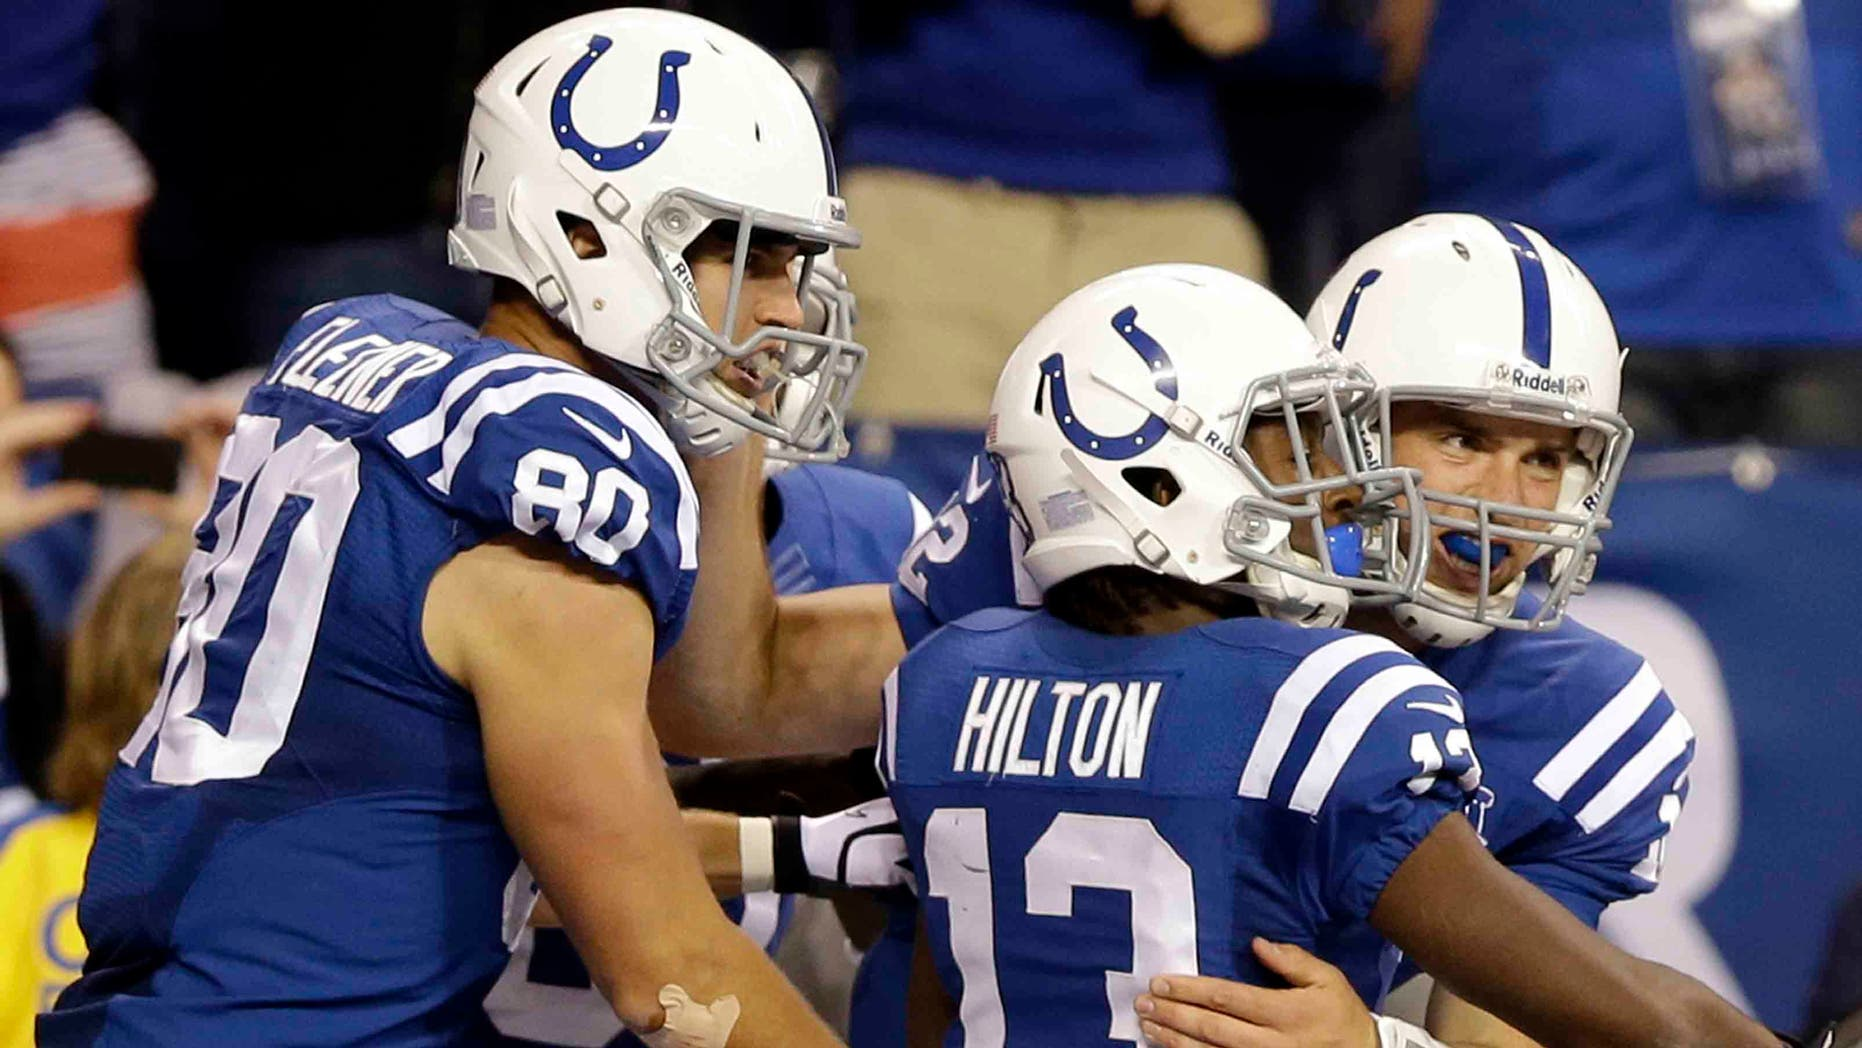 FILE - In this Oct. 20, 2013 file photo, Indianapolis Colts quarterback Andrew Luck celebrates his touchdown with tight end Coby Fleener (80) and wide receiver T.Y. Hilton (13) during the second half of an NFL football game against the Denver Broncos, in Indianapolis. Last season, the Colts overcame the loss of Peyton Manning and the loss of their coach as he battled cancer to make the playoffs. This season, Andrew Luck has already guided Indy to three fourth-quarter wins and the Colts are a remarkable 13-2 in one-possession games over the last two seasons.(AP Photo/Michael Conroy, File)